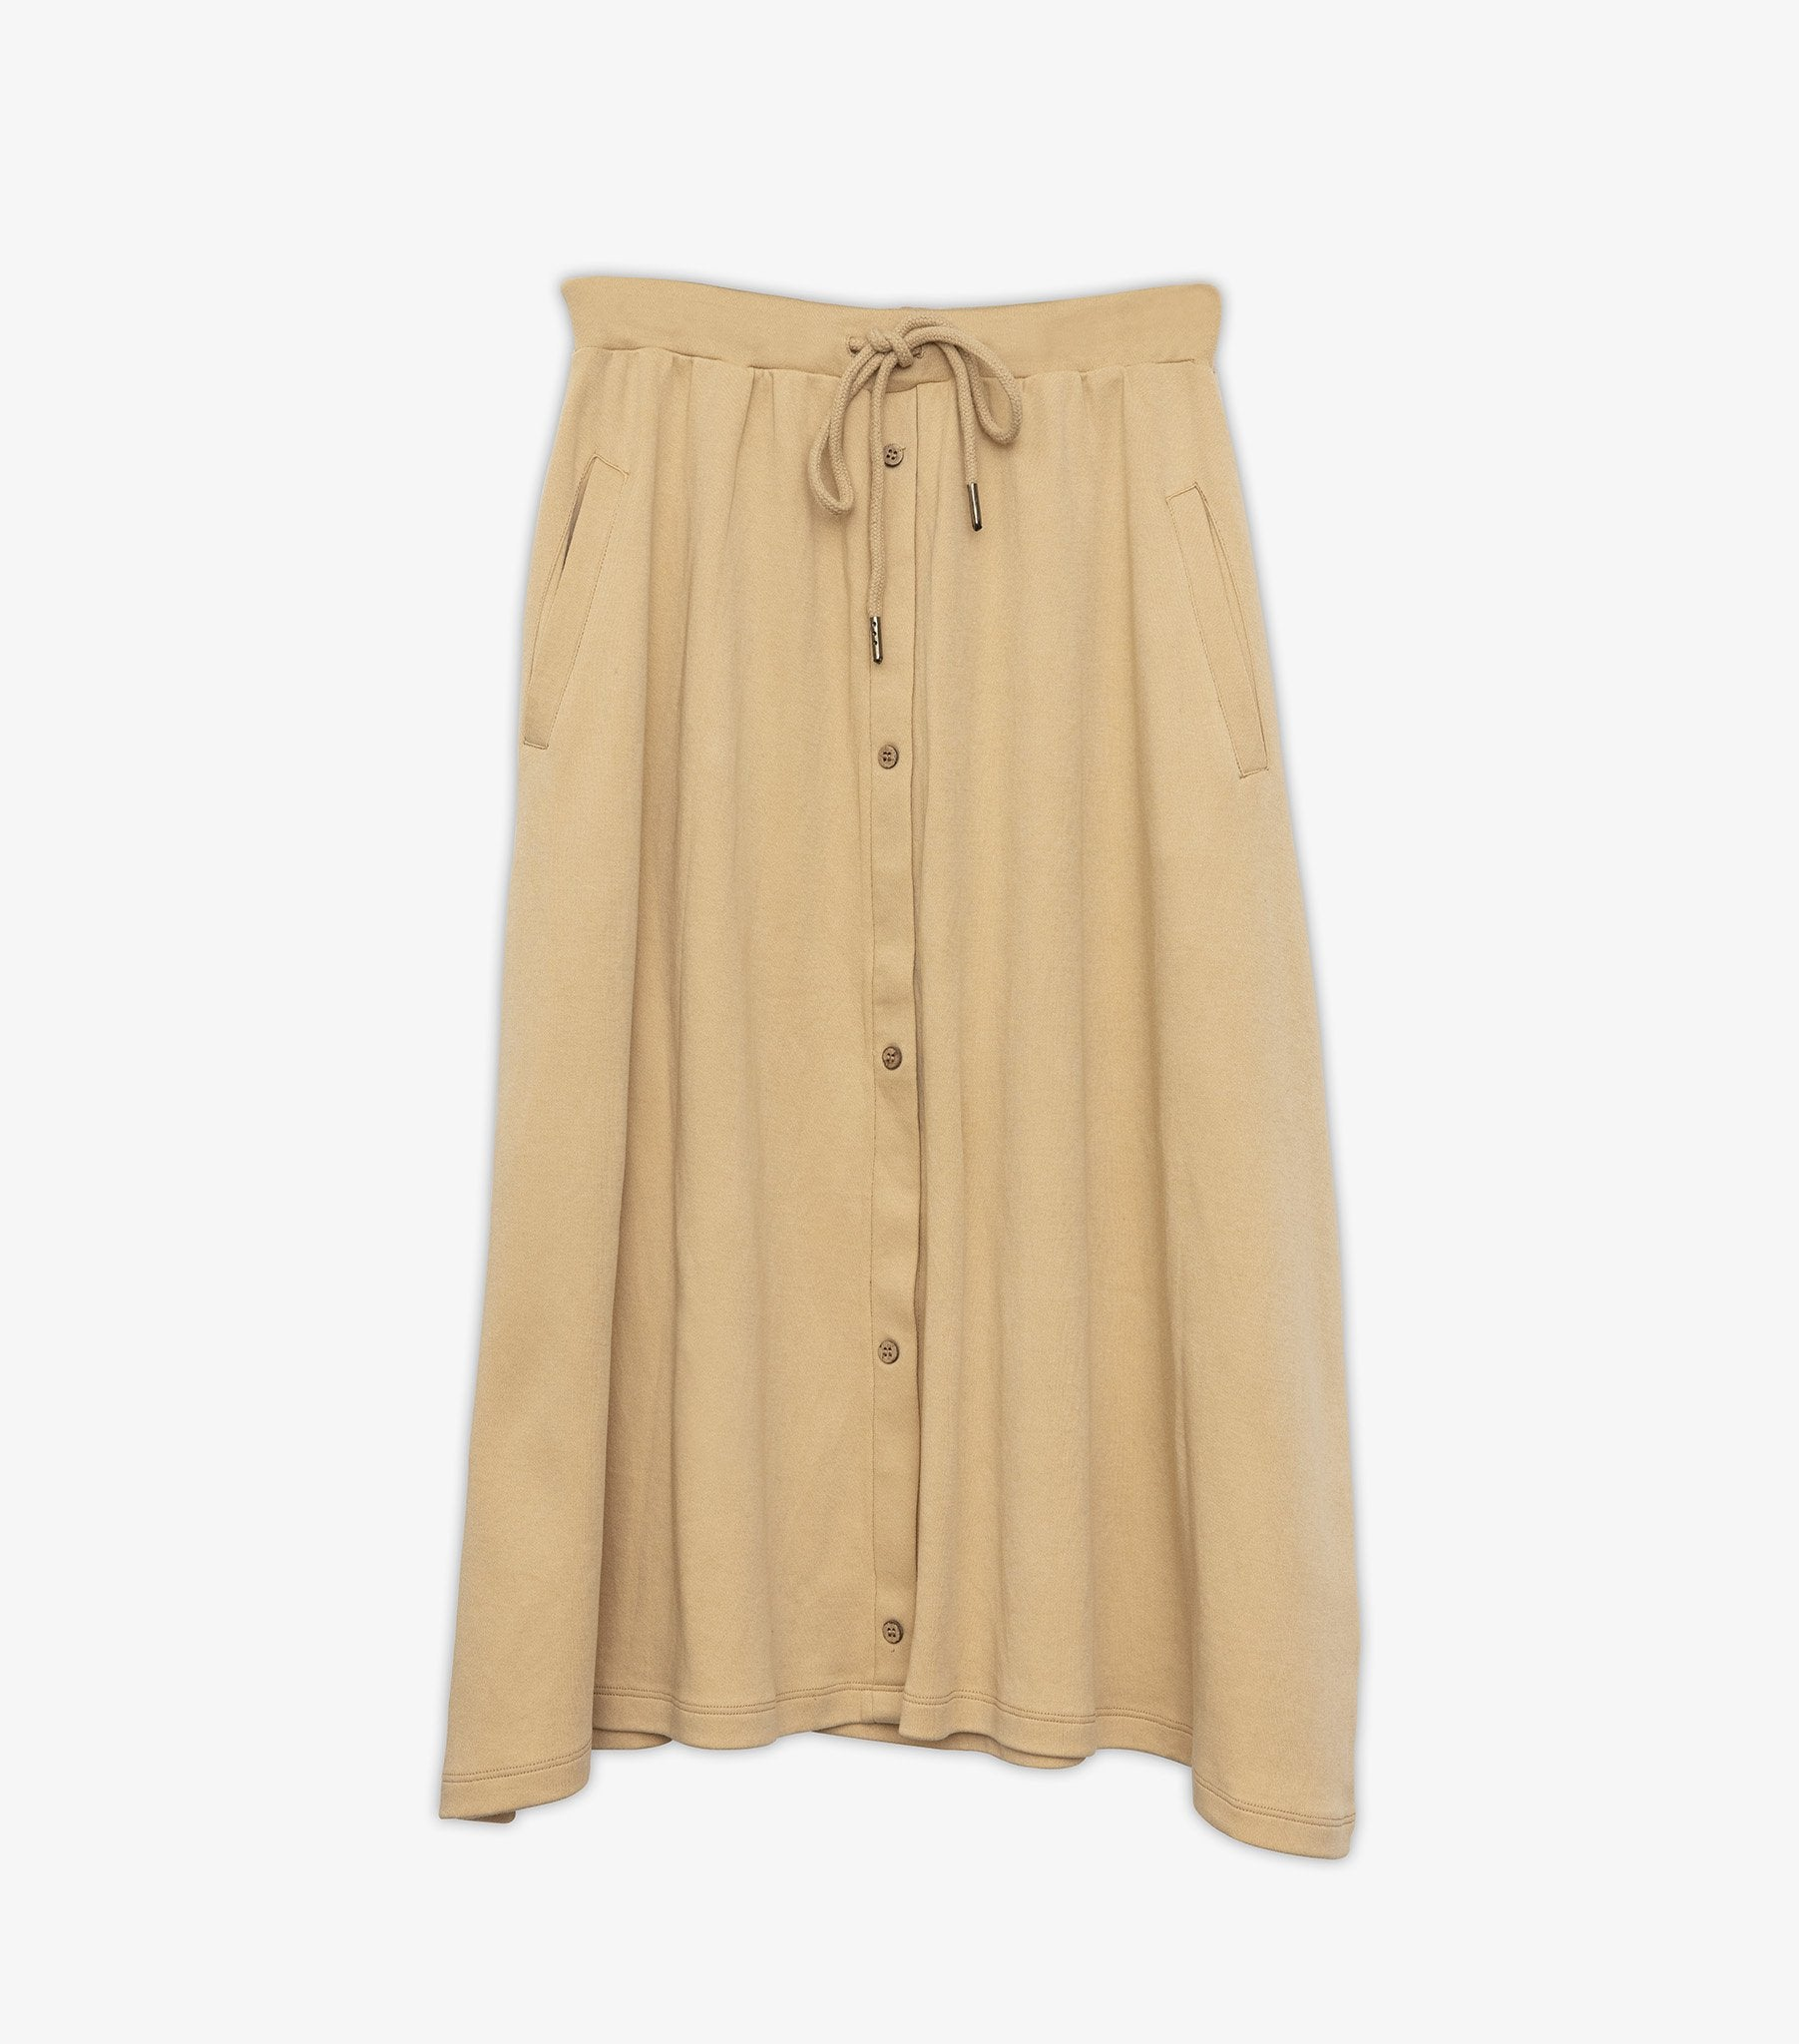 Jemimah Button Down Skirt - Warm Sand